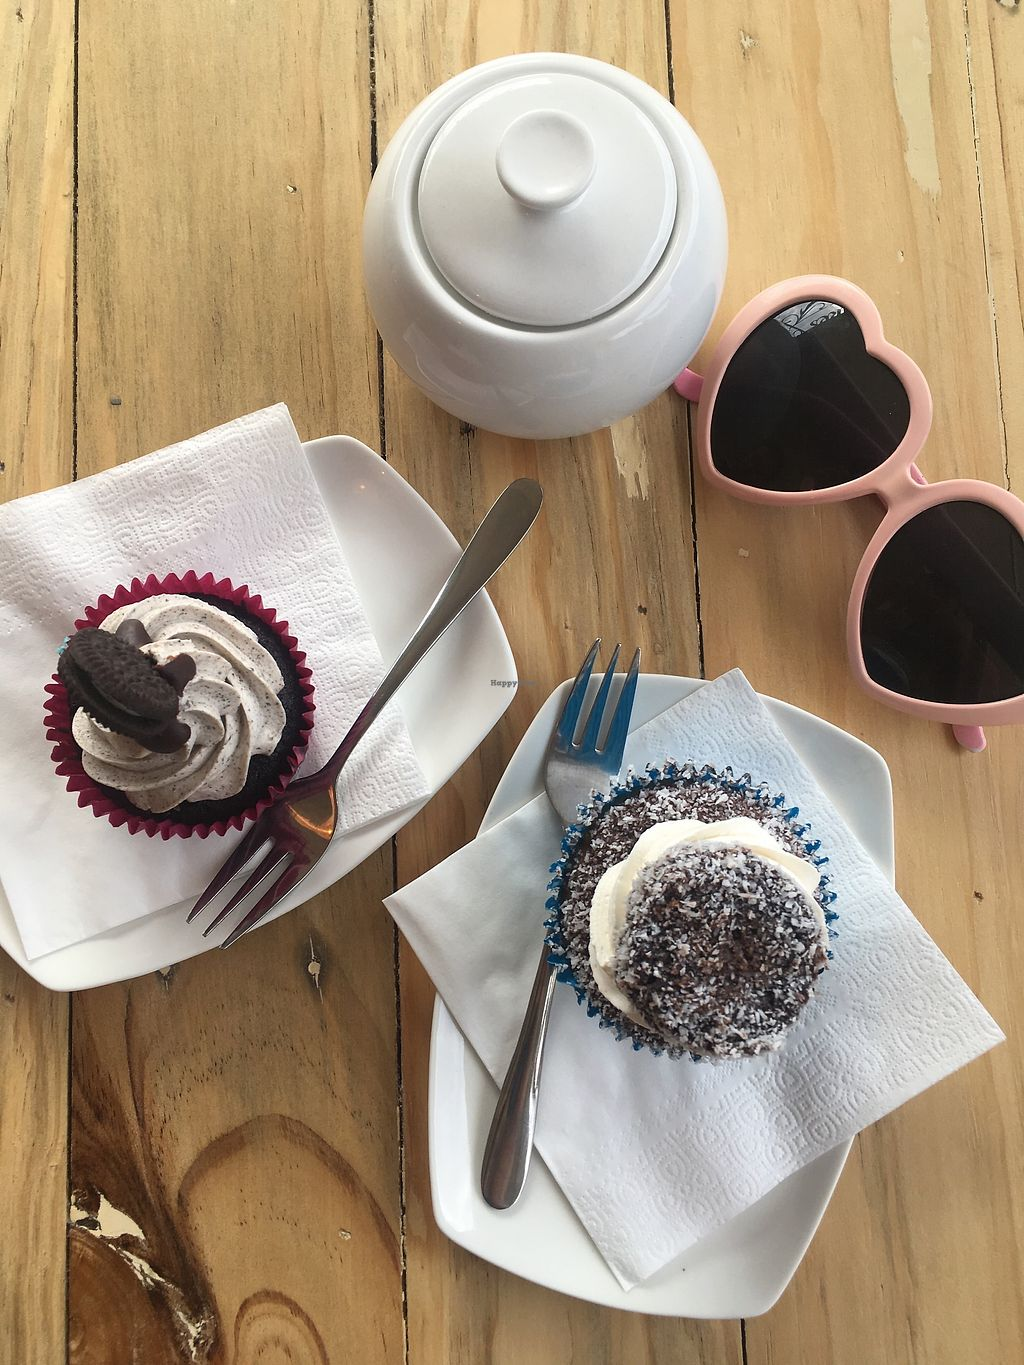 """Photo of Cakes Annie Time  by <a href=""""/members/profile/jojoinbrighton"""">jojoinbrighton</a> <br/>Delicious vegan cupcakes <br/> August 5, 2017  - <a href='/contact/abuse/image/97906/288943'>Report</a>"""